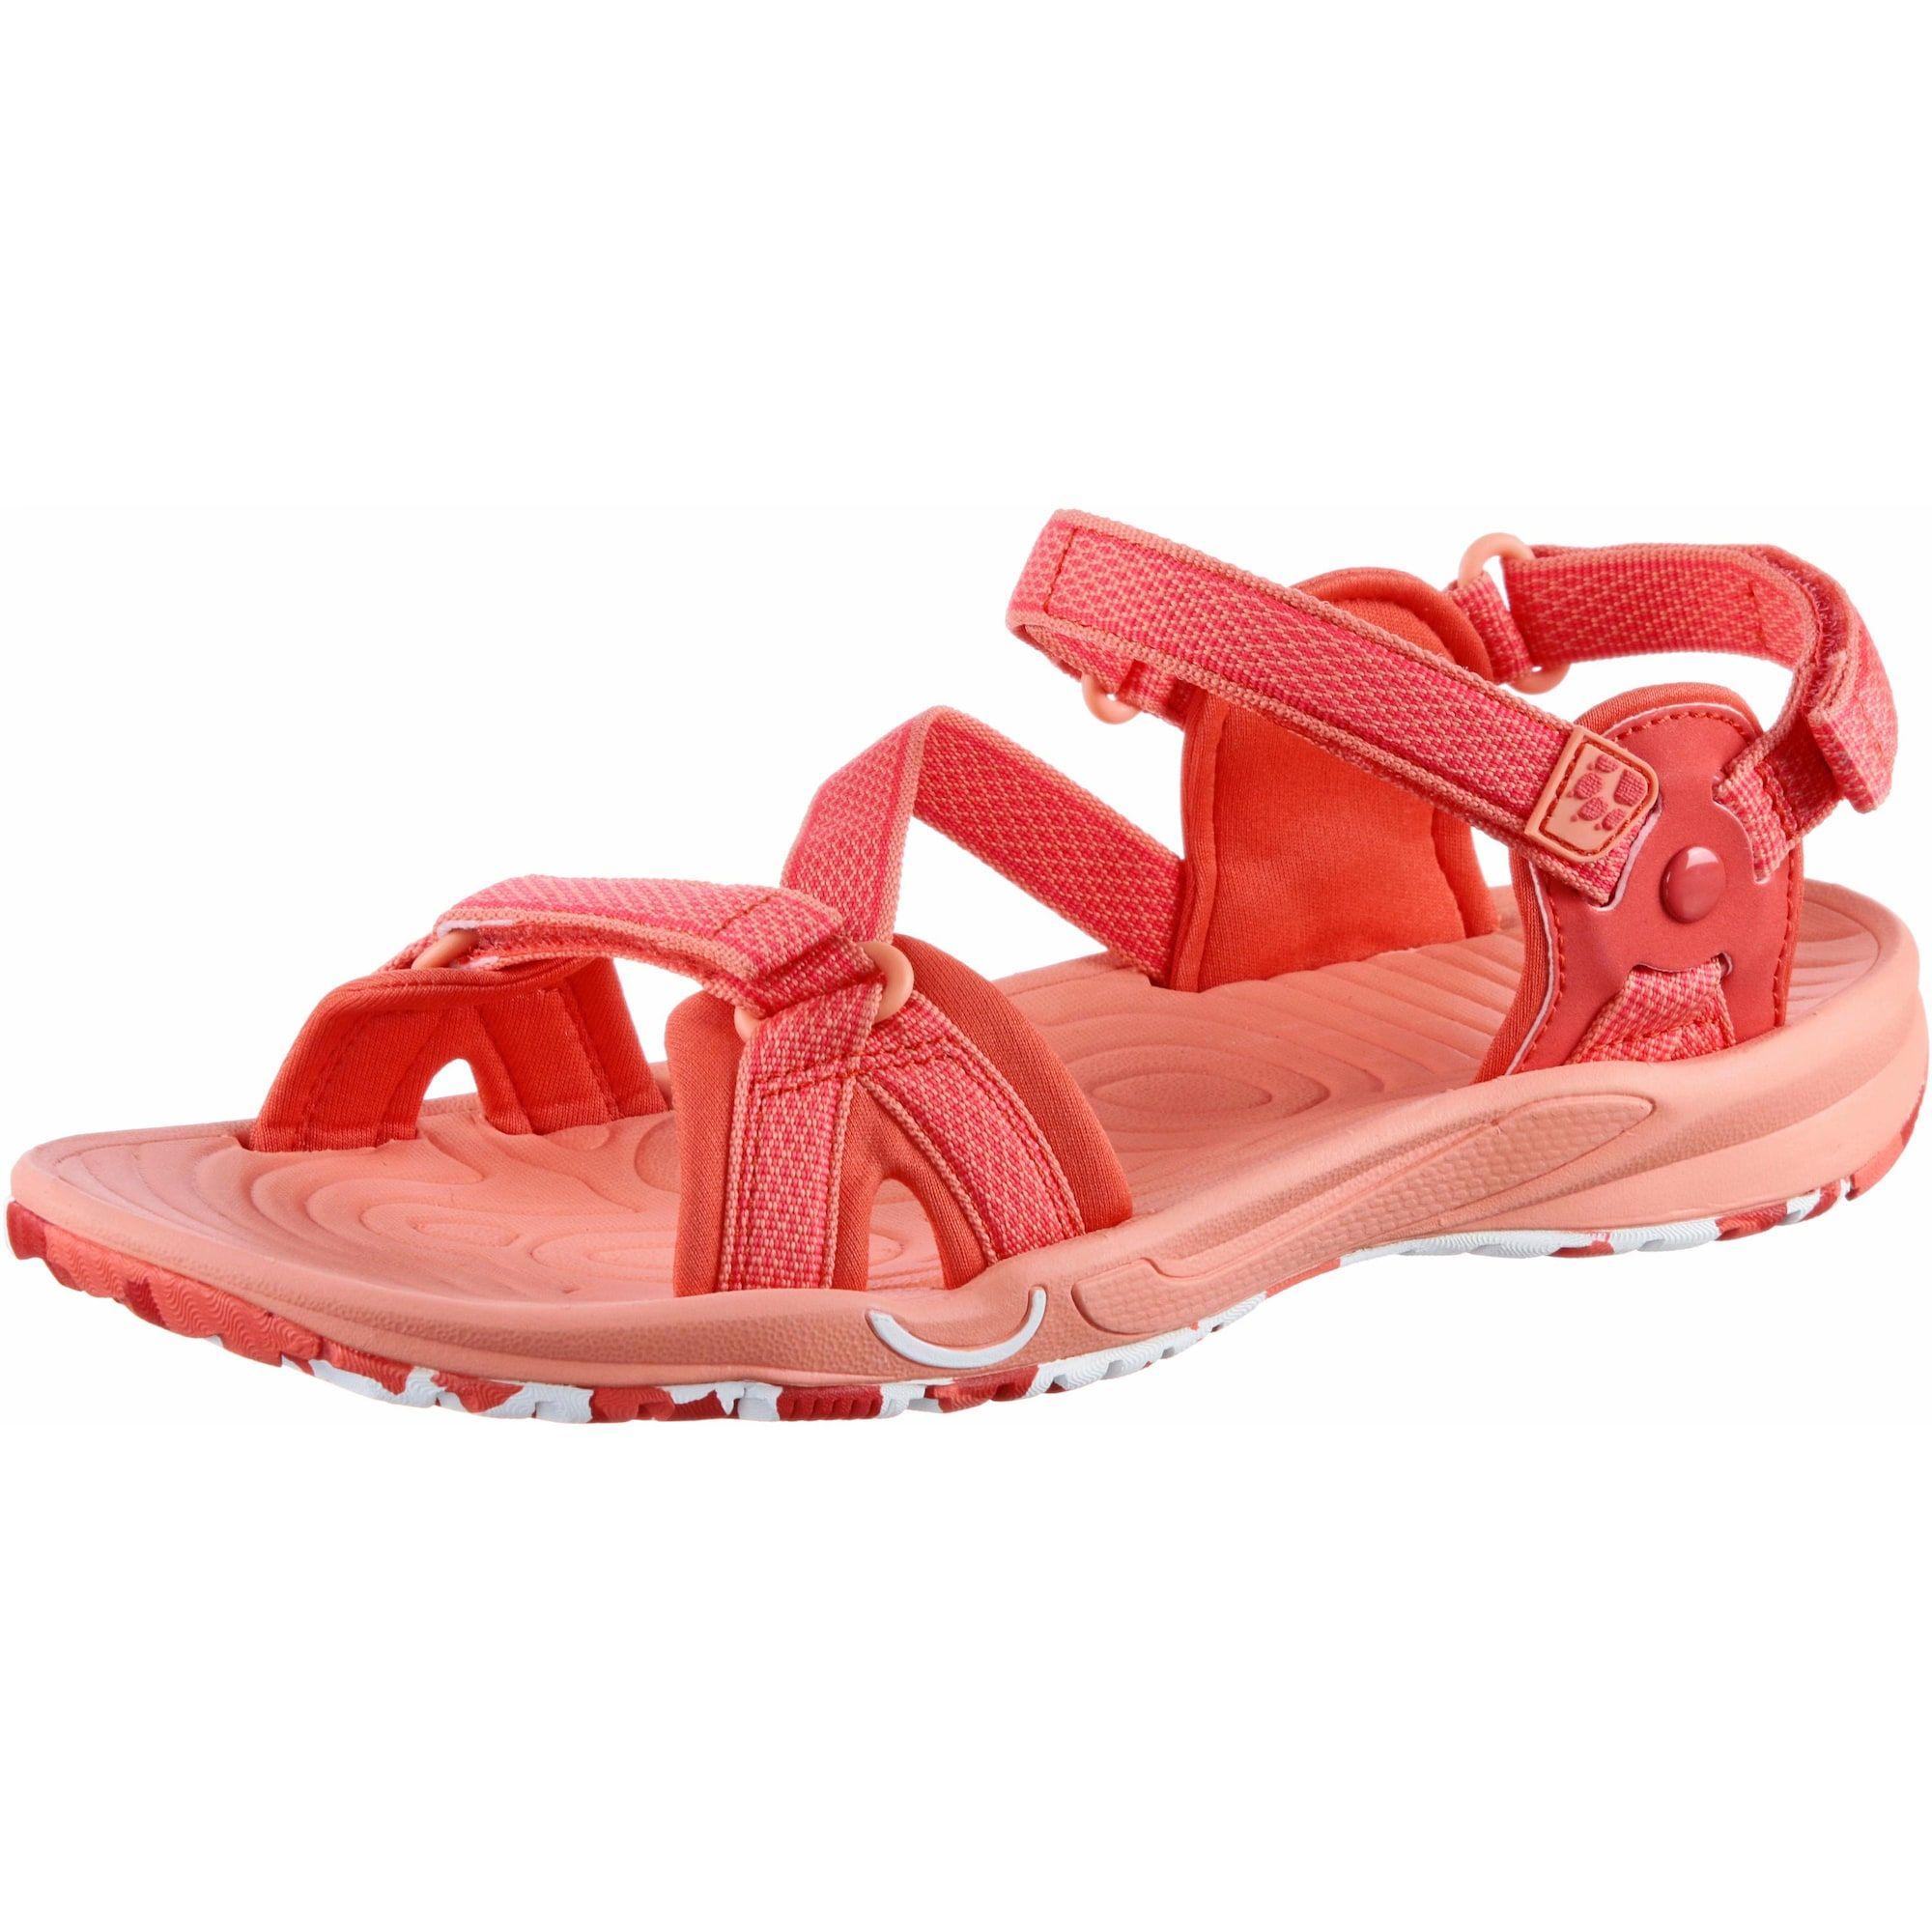 Outdoorsandalen ´Lakewood Ride´